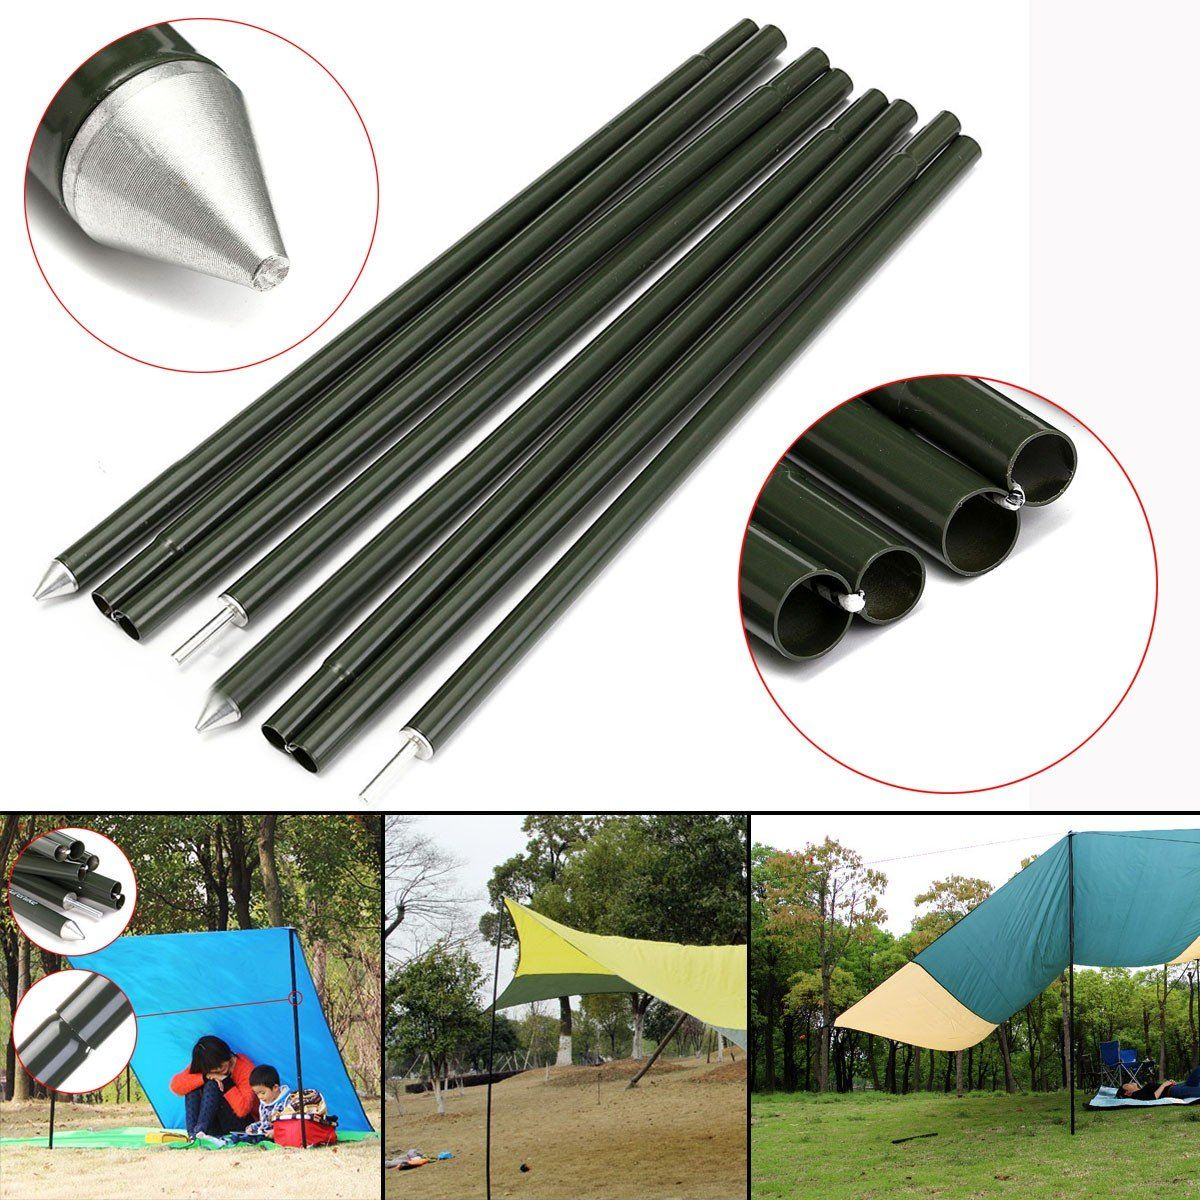 2x2m C&ing Awning Tent Poles Rod Bar Outdoor Tool Aluminum Alloy Replacement  sc 1 st  Pinterest & 2x2m Camping Awning Tent Poles Rod Bar Outdoor Tool Aluminum Alloy ...